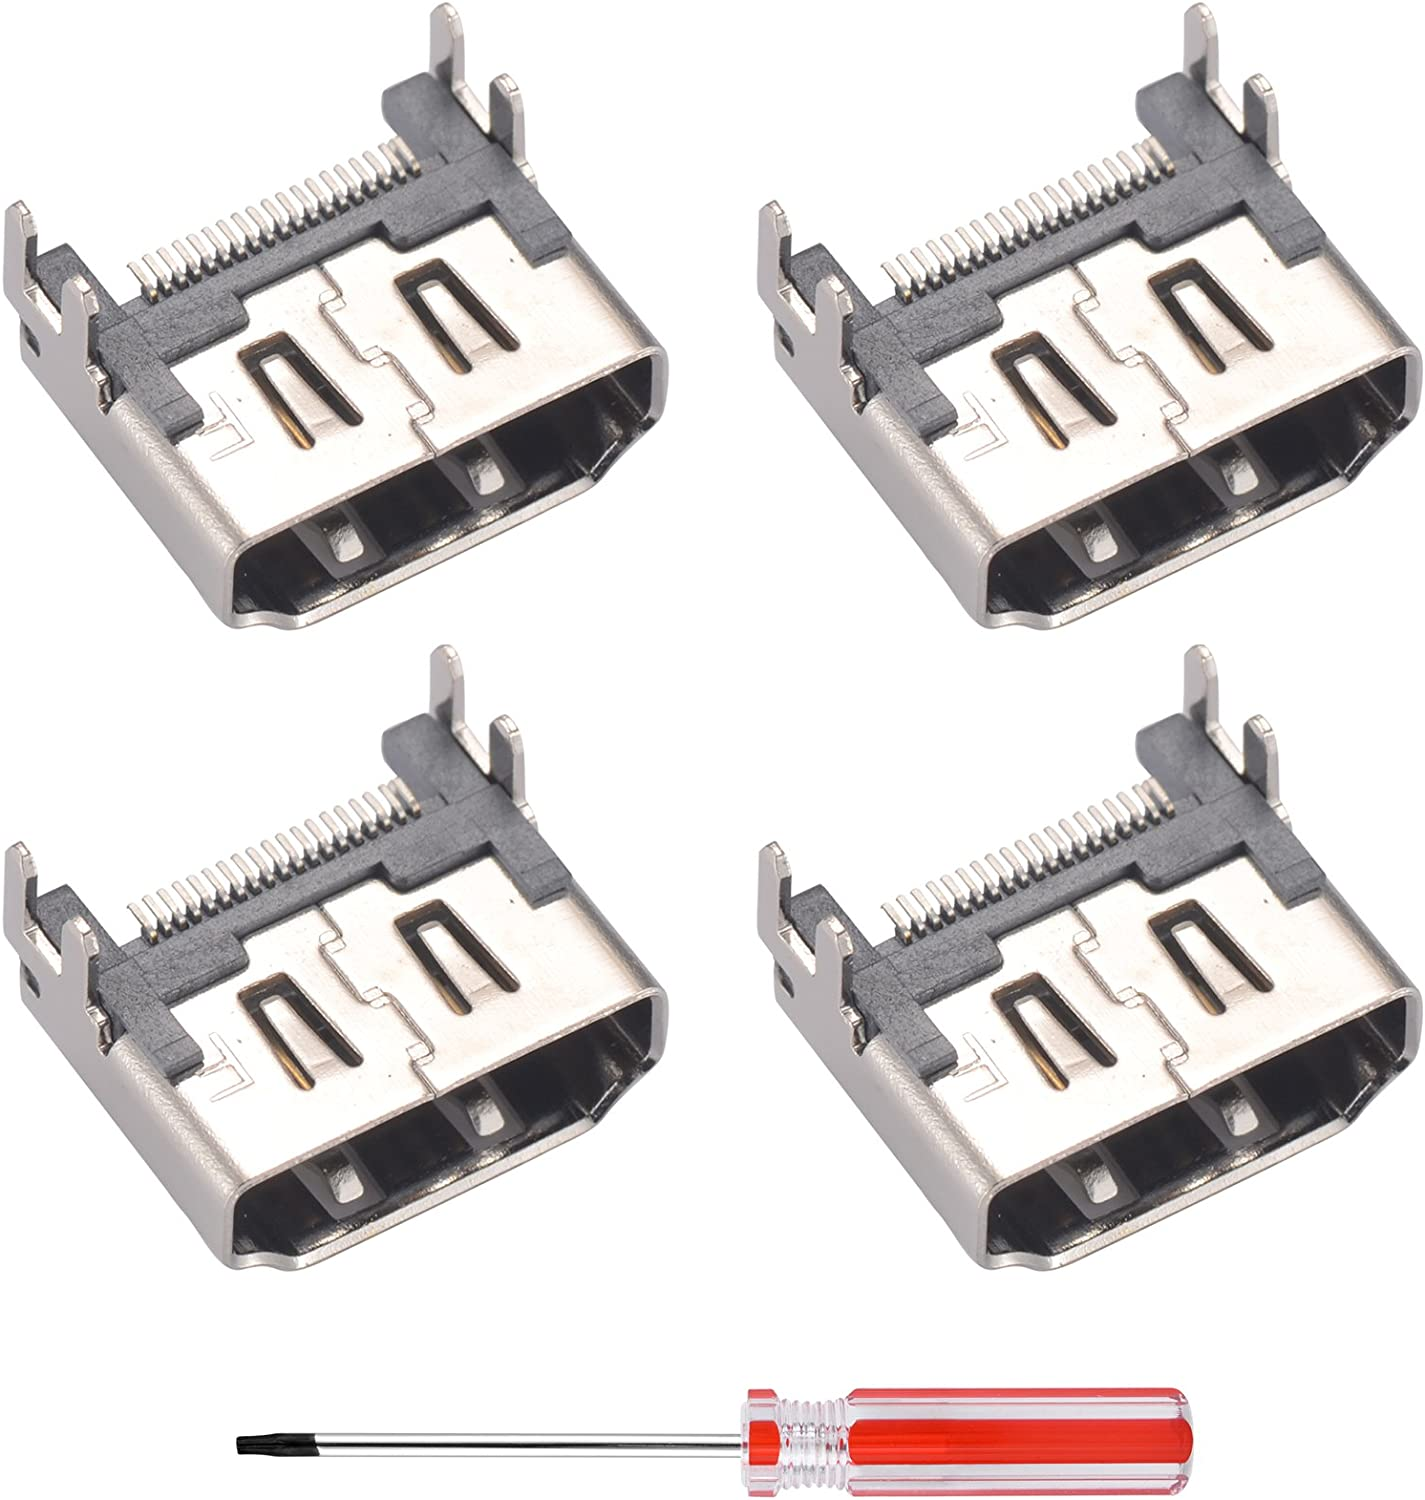 HDMI Port for Sony Playstation 4 with Tool Kit